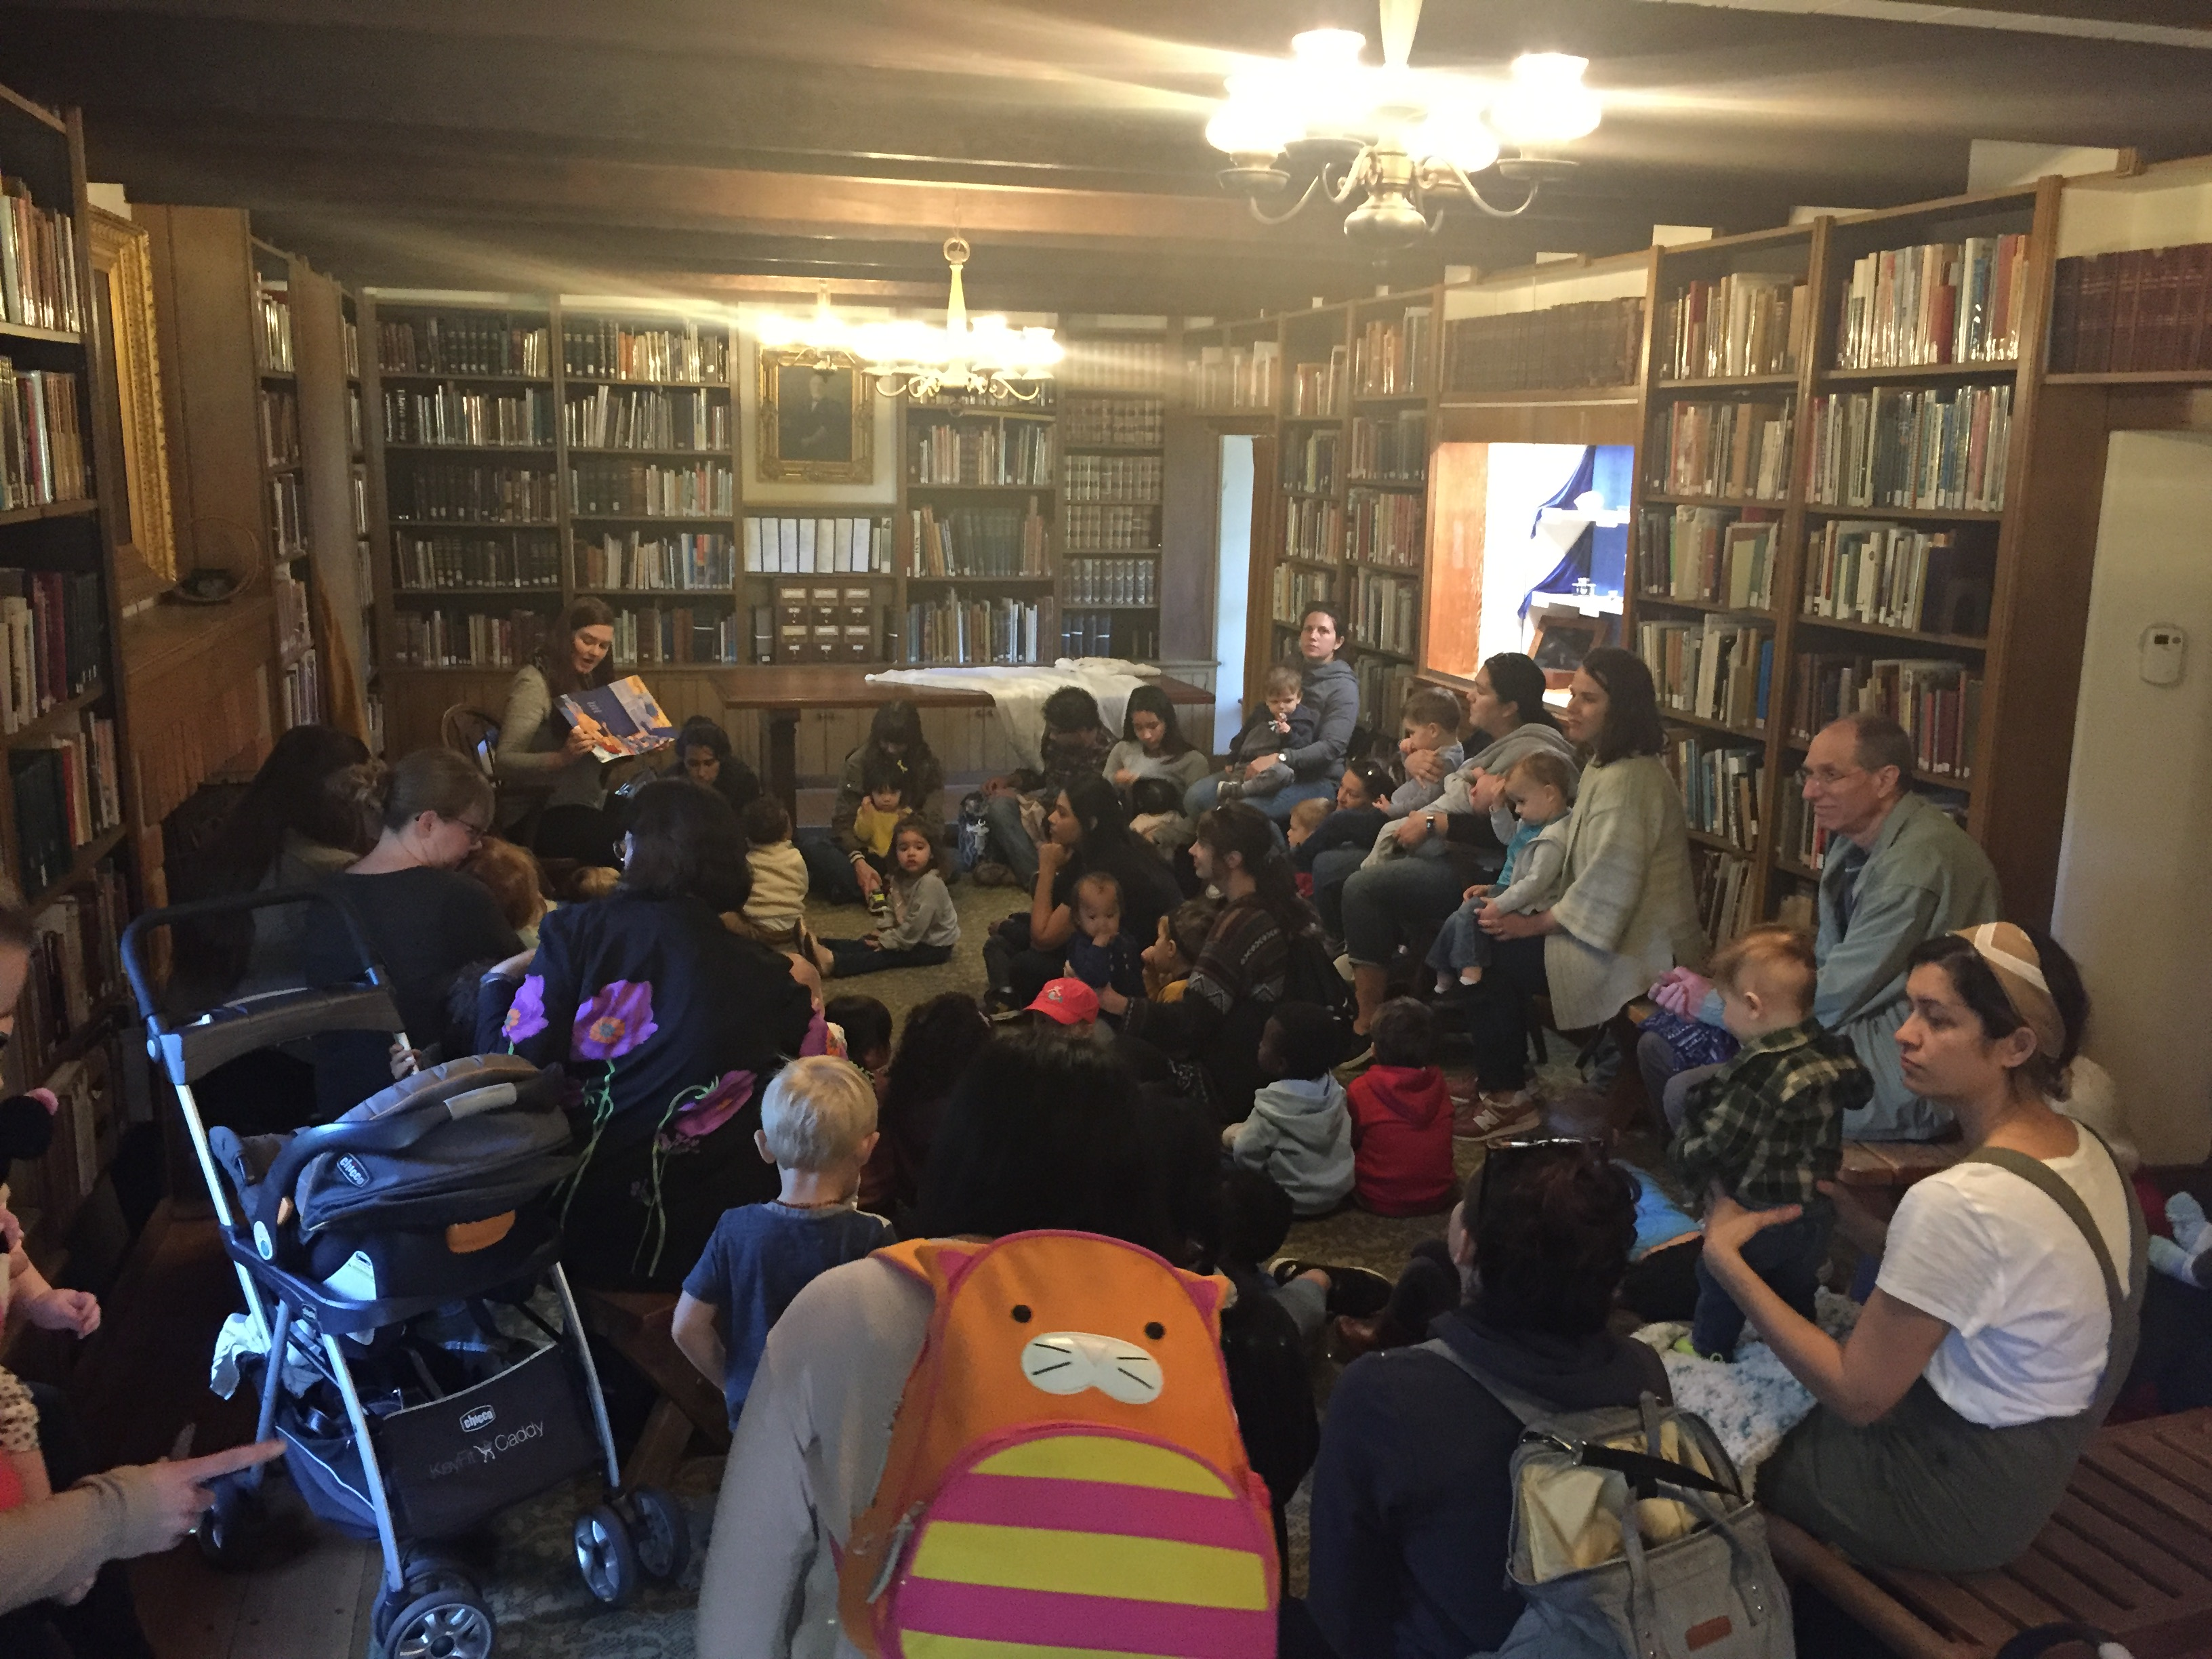 Please join us at storytime every Tuesday at Rancho Los Cerritos from 9:30 to 10 a.m.